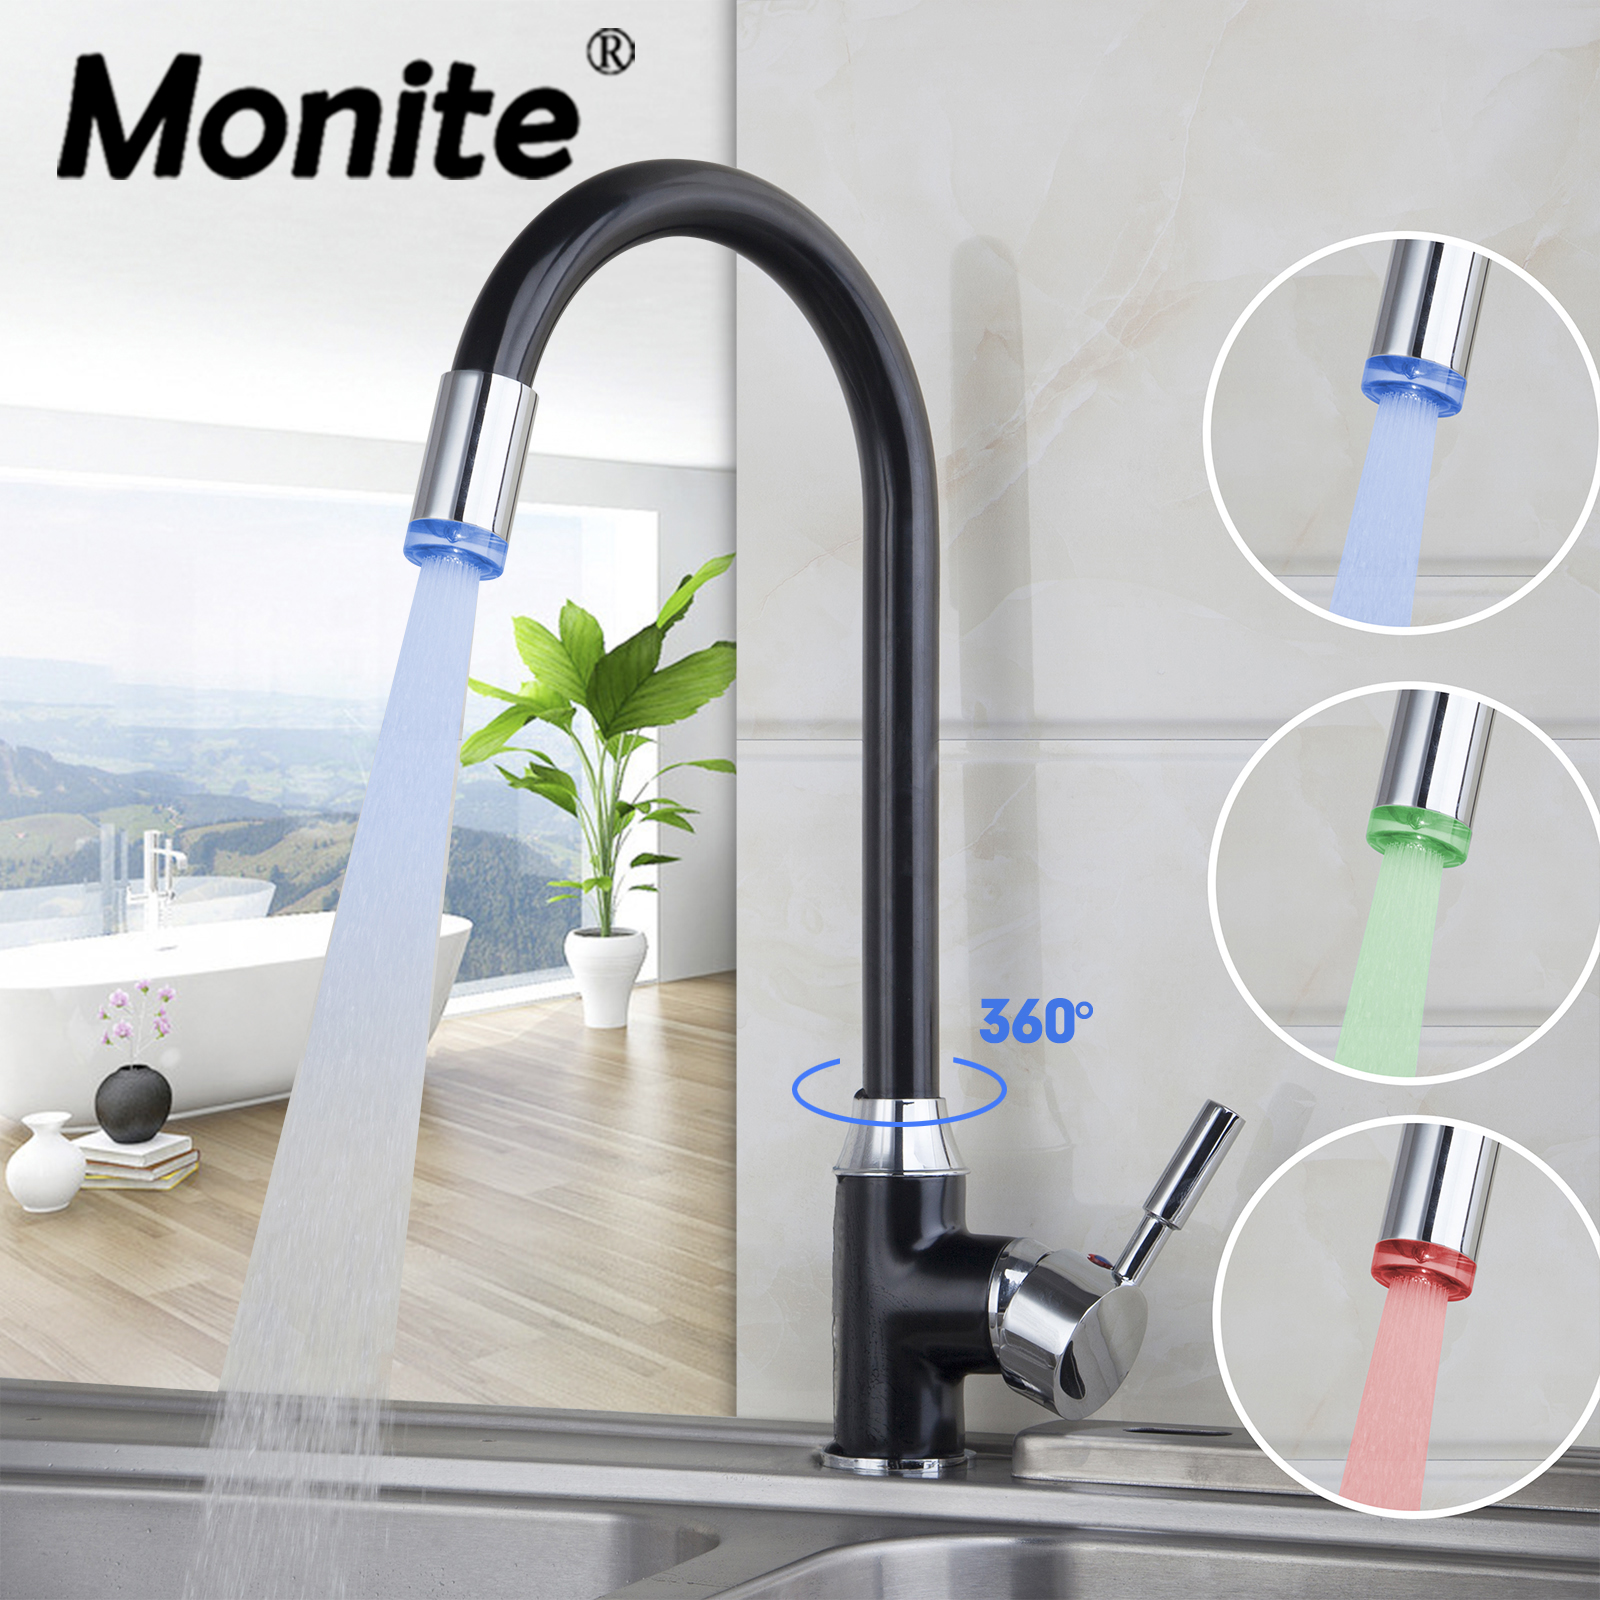 Bathroom Sink Faucet With Red, Blue Or Green LED Light